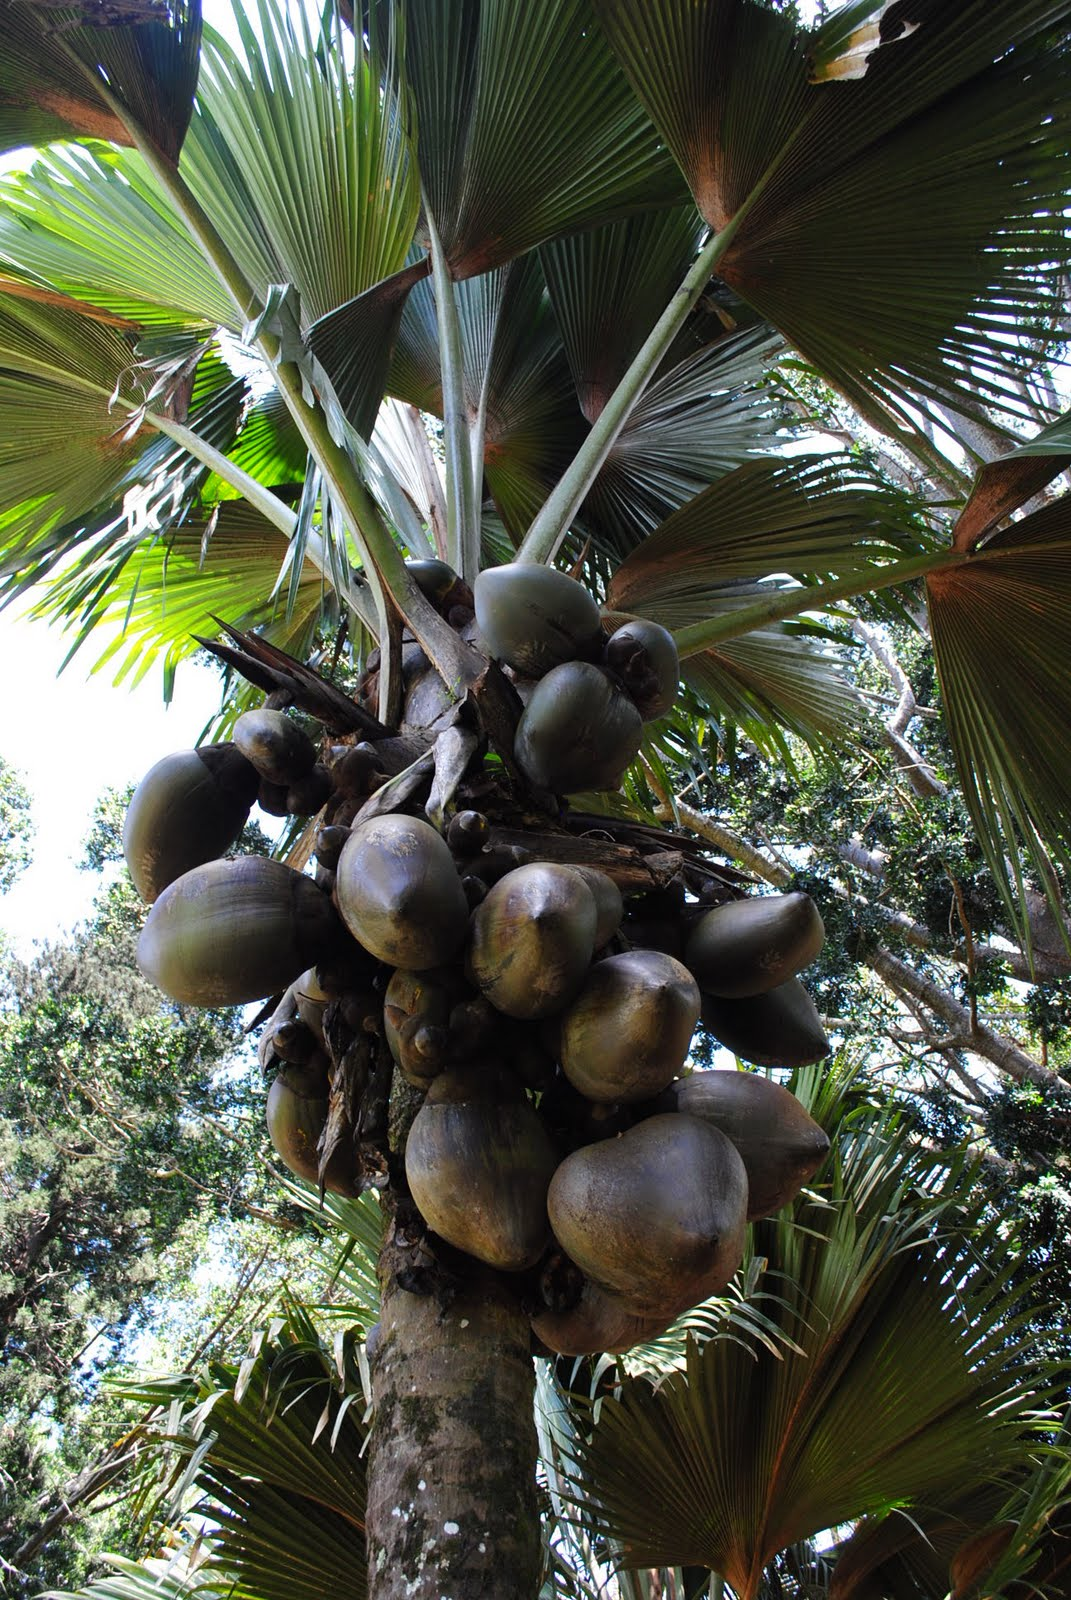 plantspeople: coco de mer, double coconut, beautiful rump